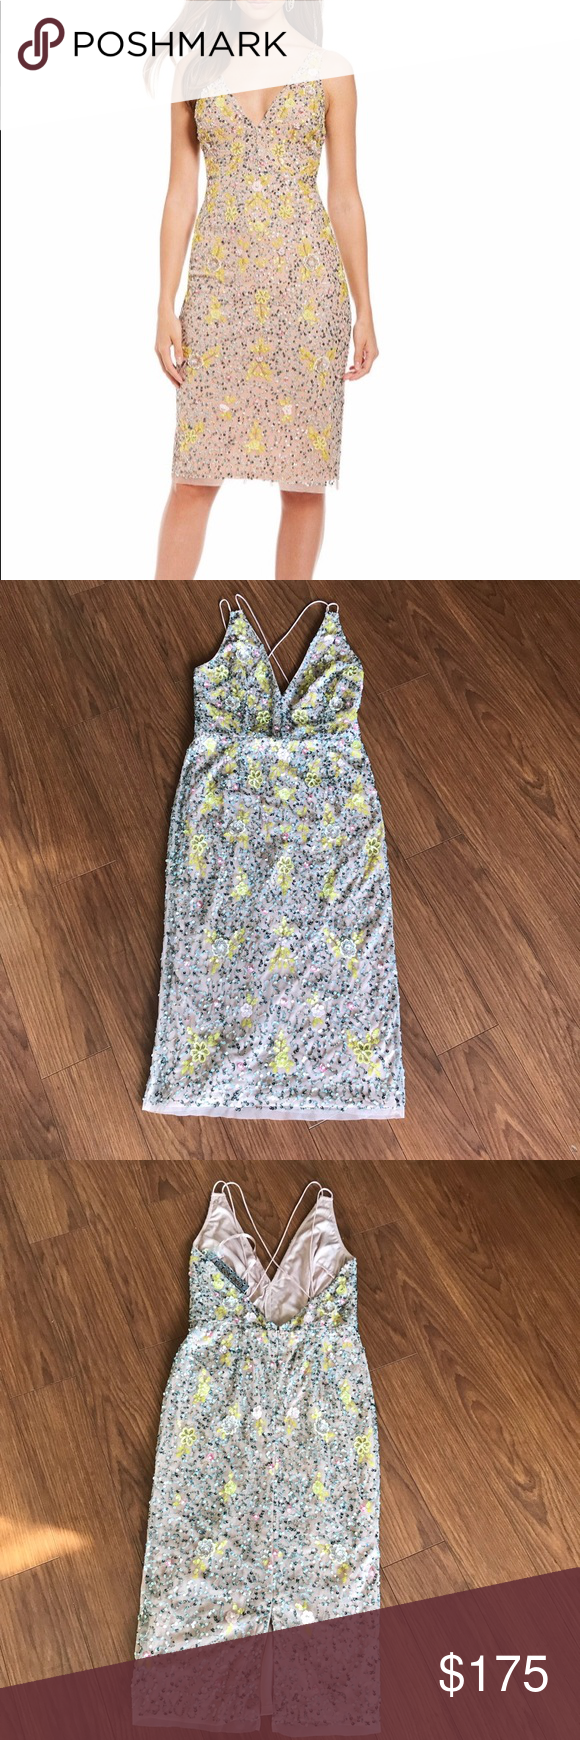 1da37eb5d2f Gianni Bini Madi Sequin Floral Party Dress -New